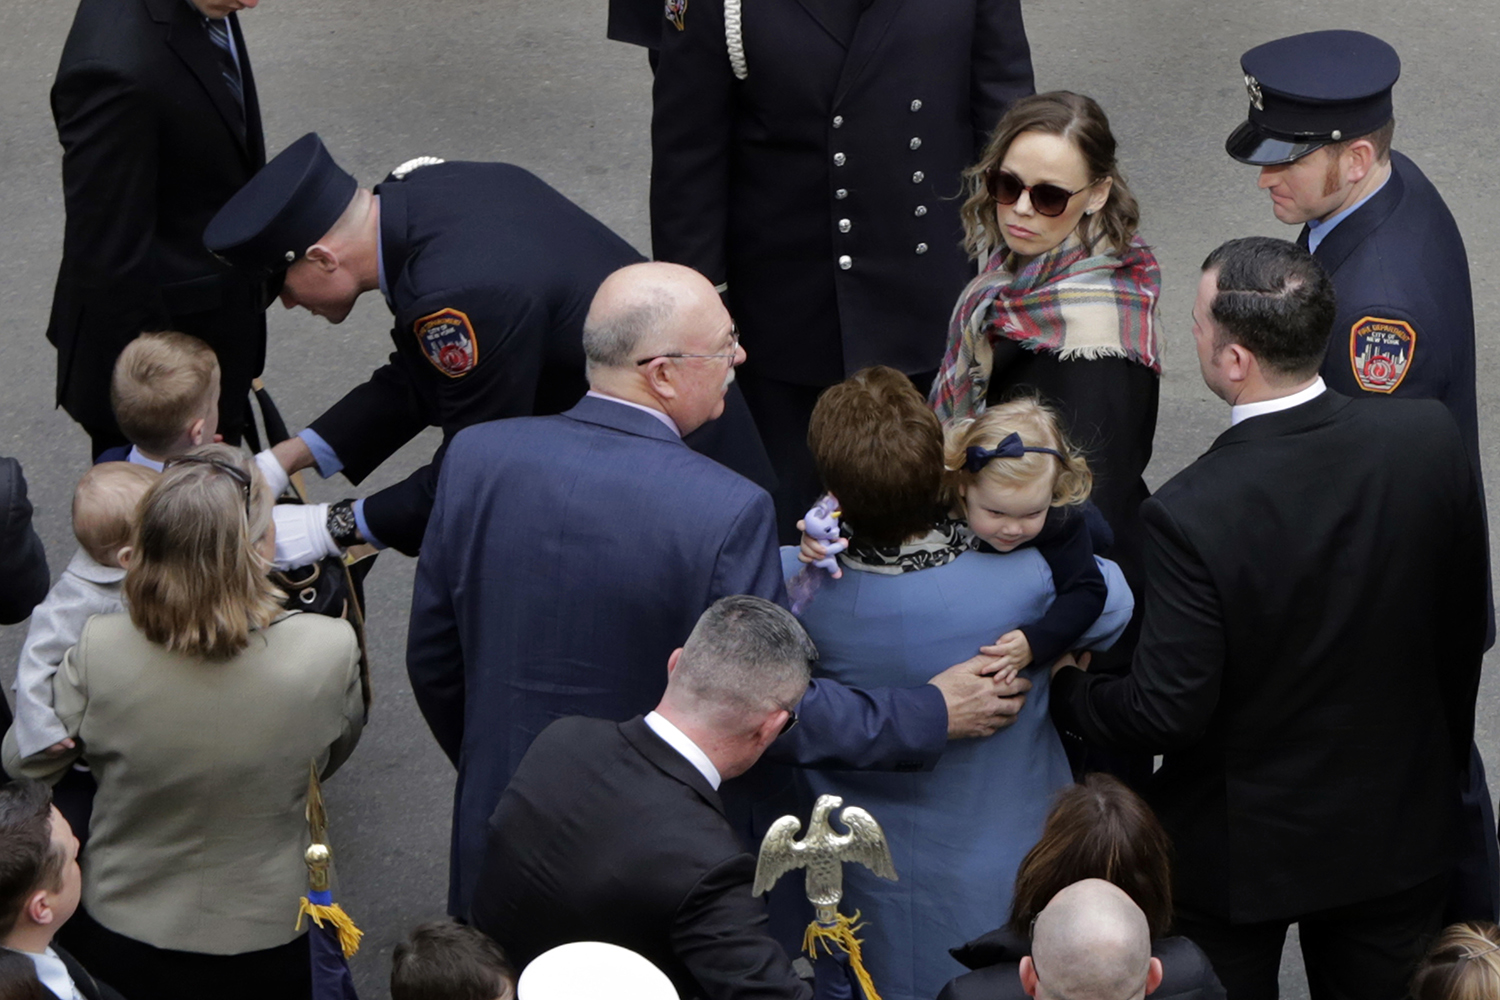 <div class='meta'><div class='origin-logo' data-origin='AP'></div><span class='caption-text' data-credit='Richard Drew'>Eileen Davidson, right, widow of firefighter Michael Davidson arrives for the funeral of her husband at New York's St. Patrick's Cathedral.</span></div>